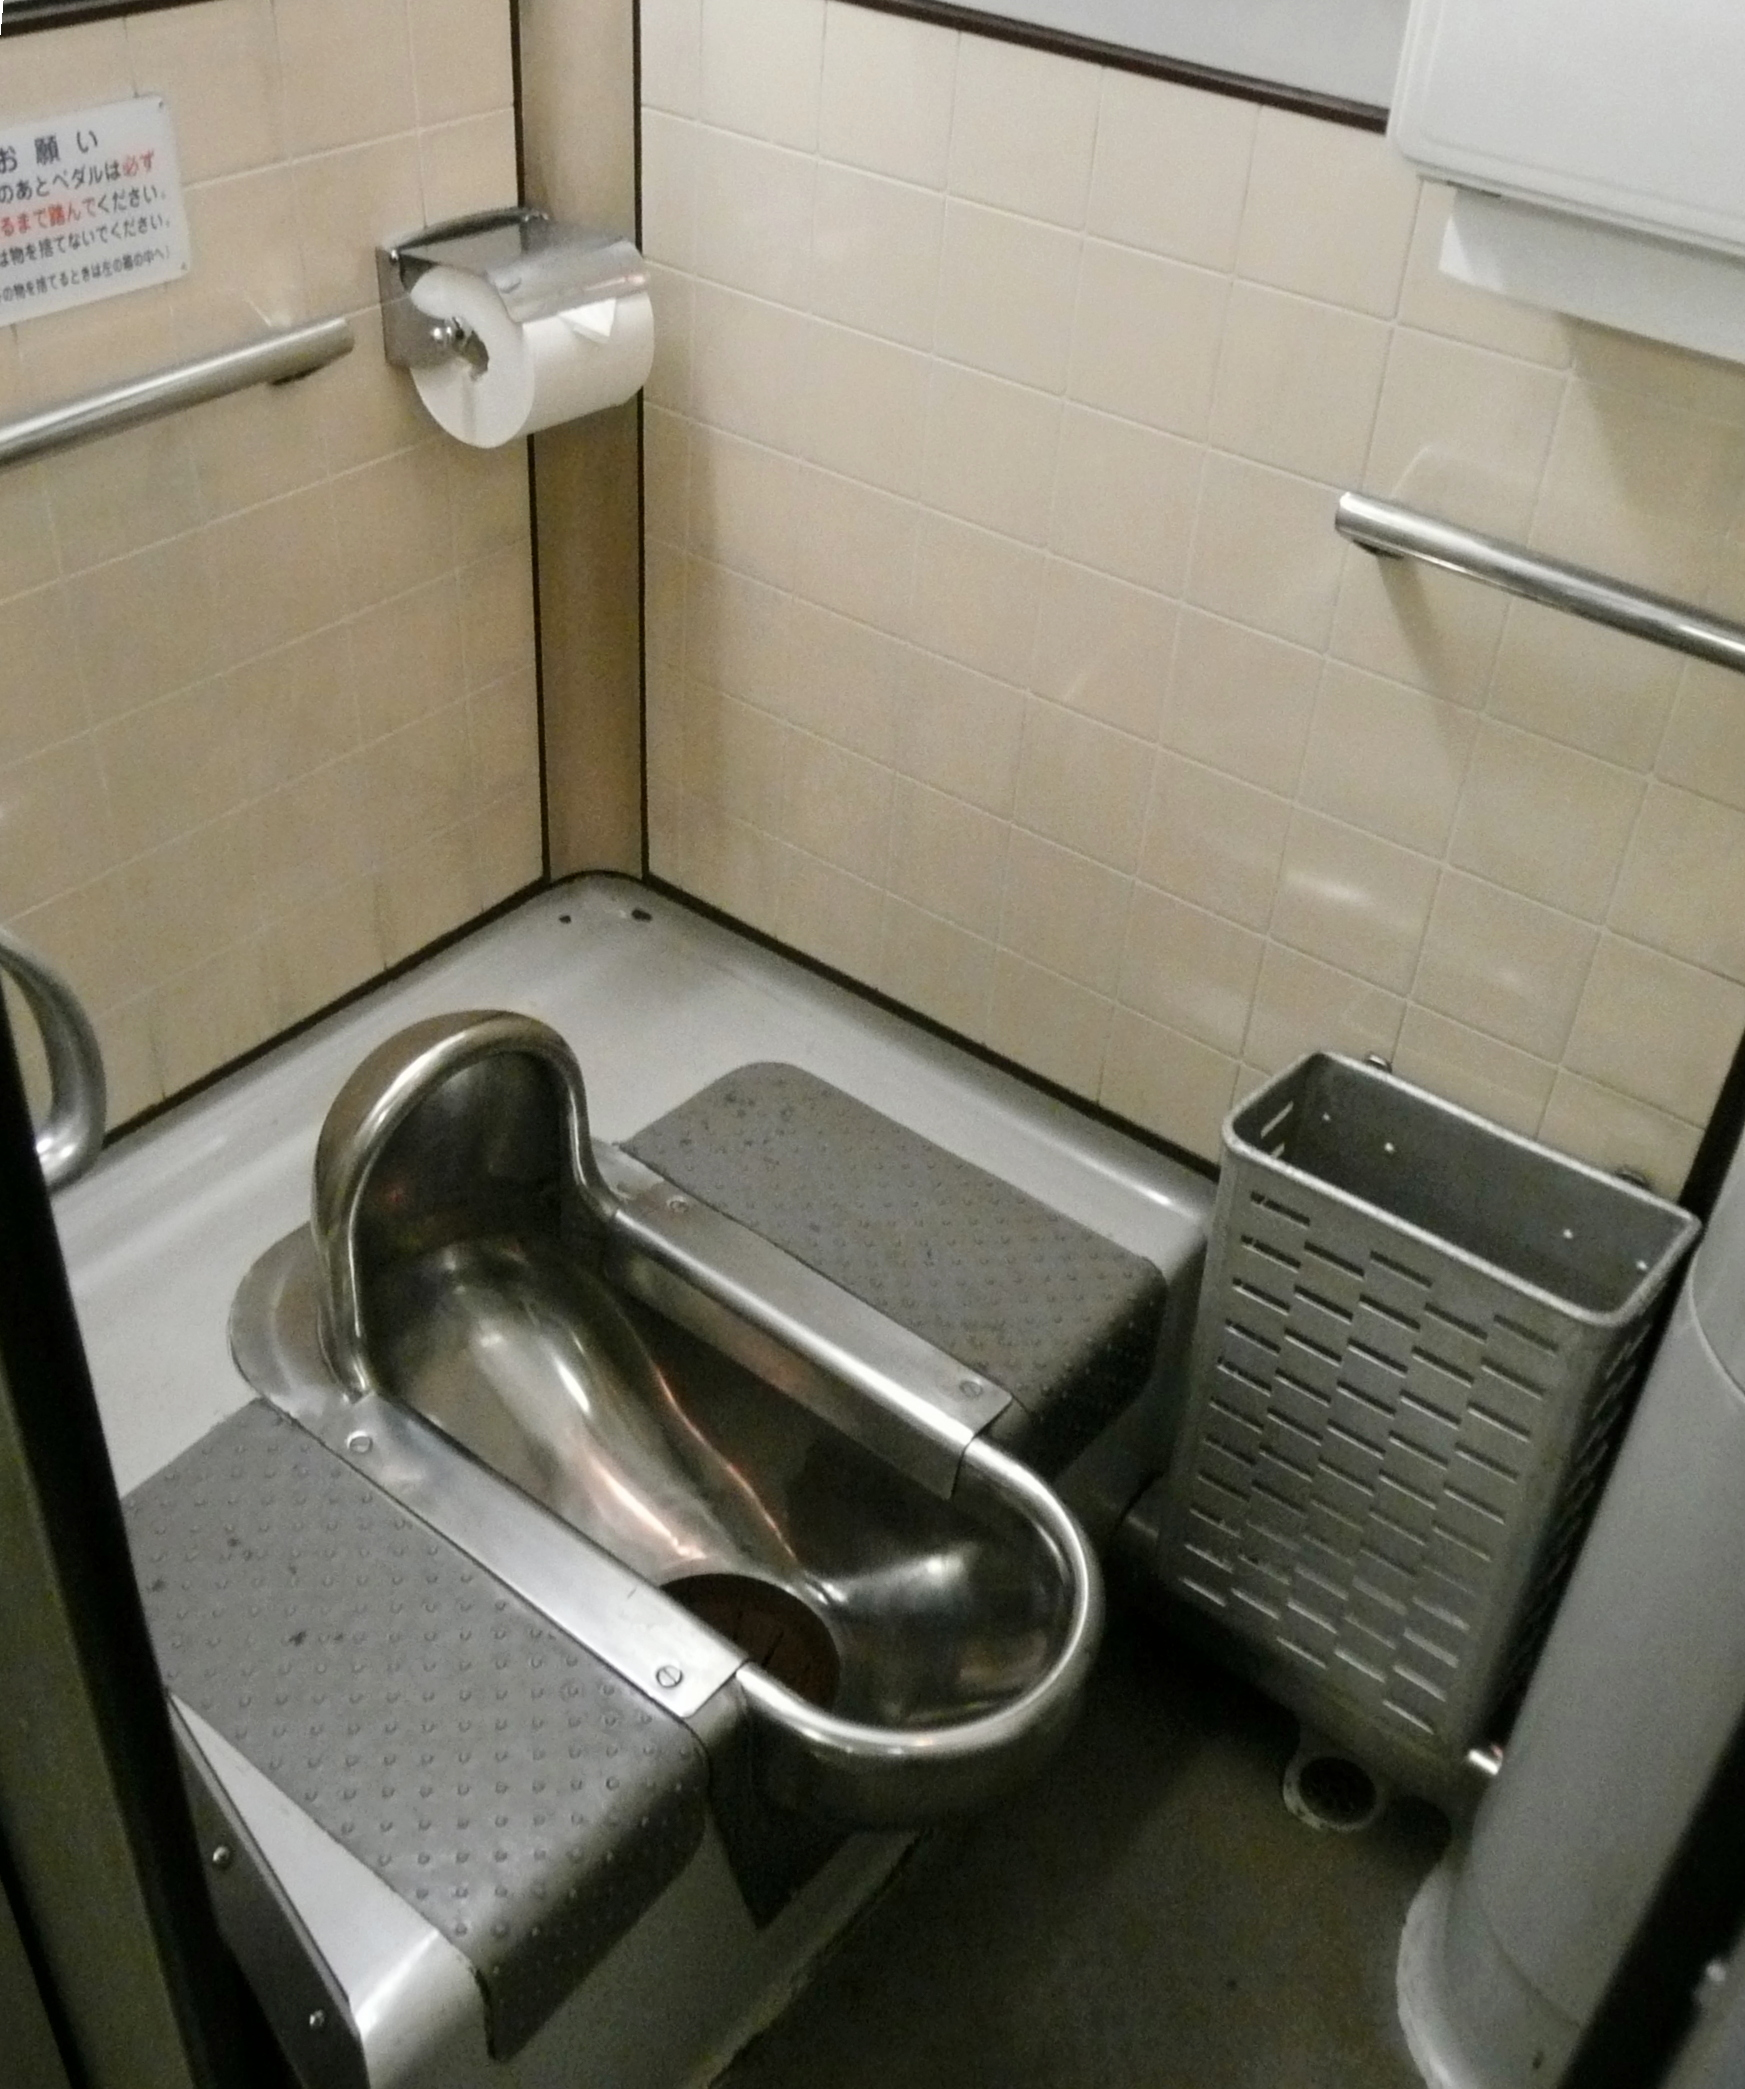 How to toilet train an older dog